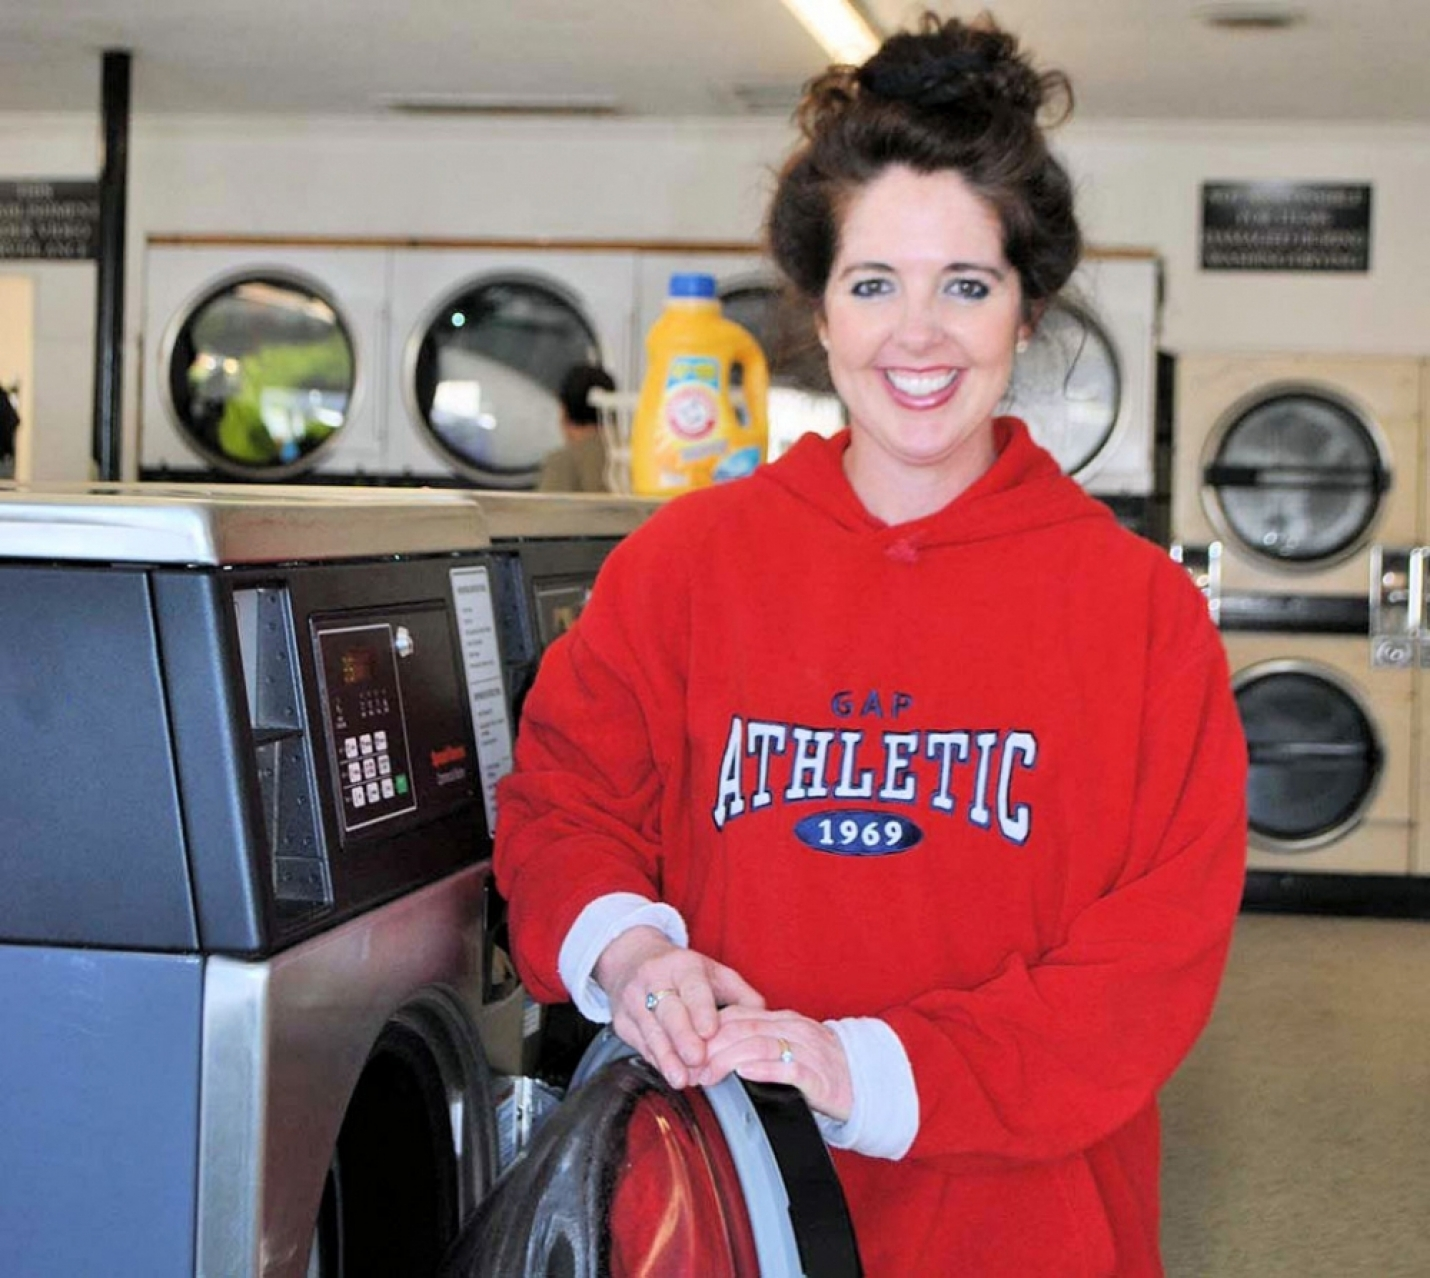 Melissa's Coin Laundry: Offering Wash, Dry and Fold Services